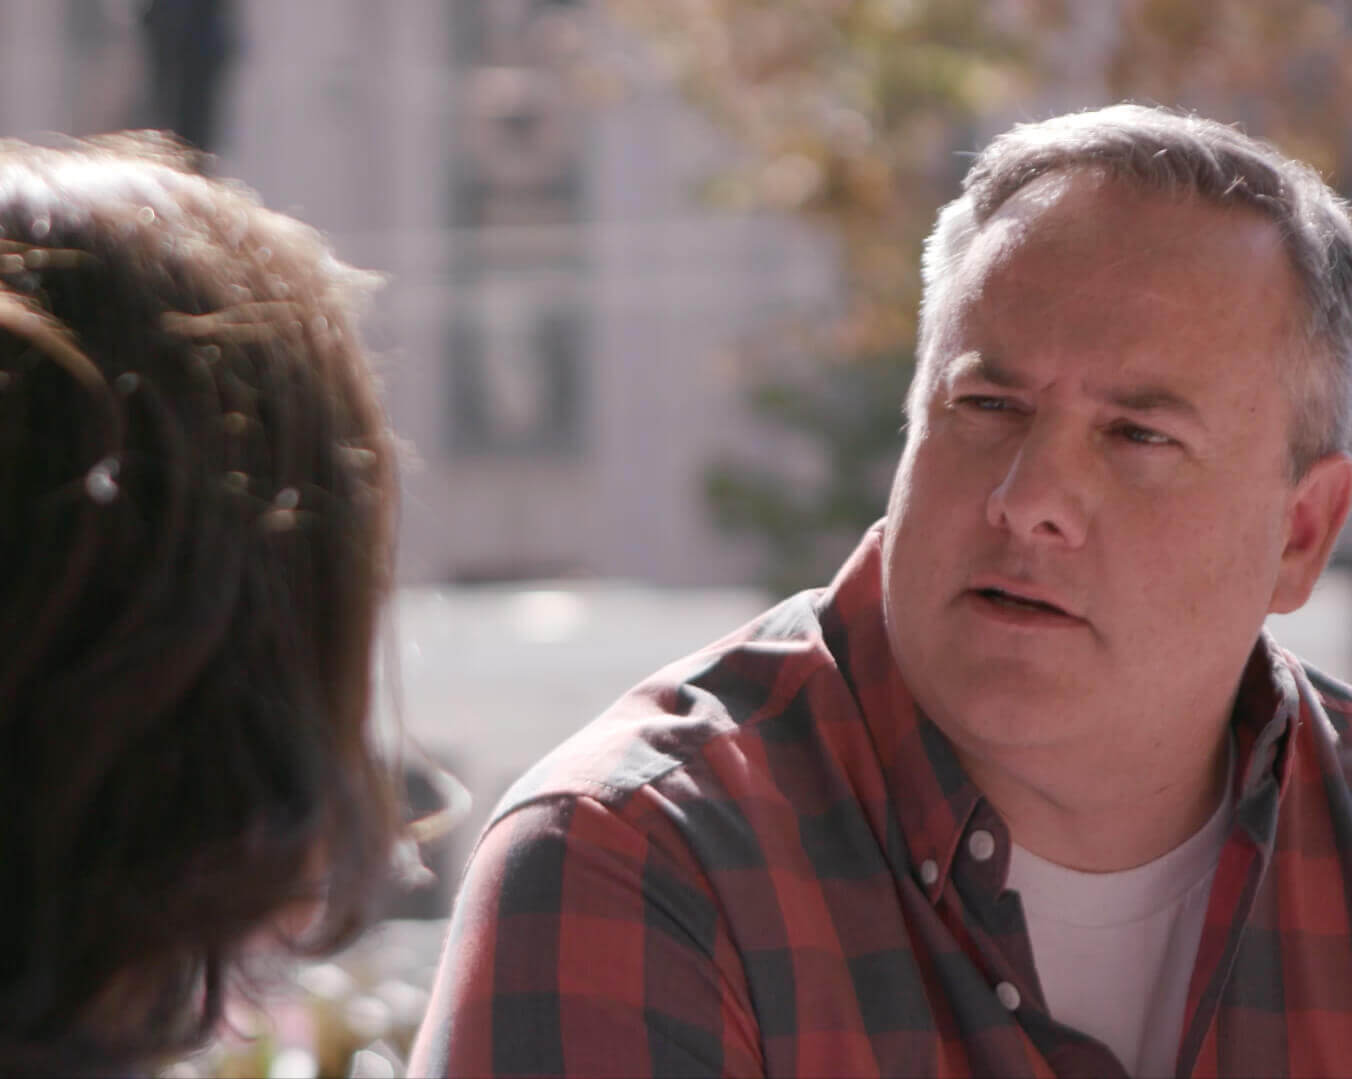 Man In a Red And Black Plaid Shirt Talking To a Woman Outside